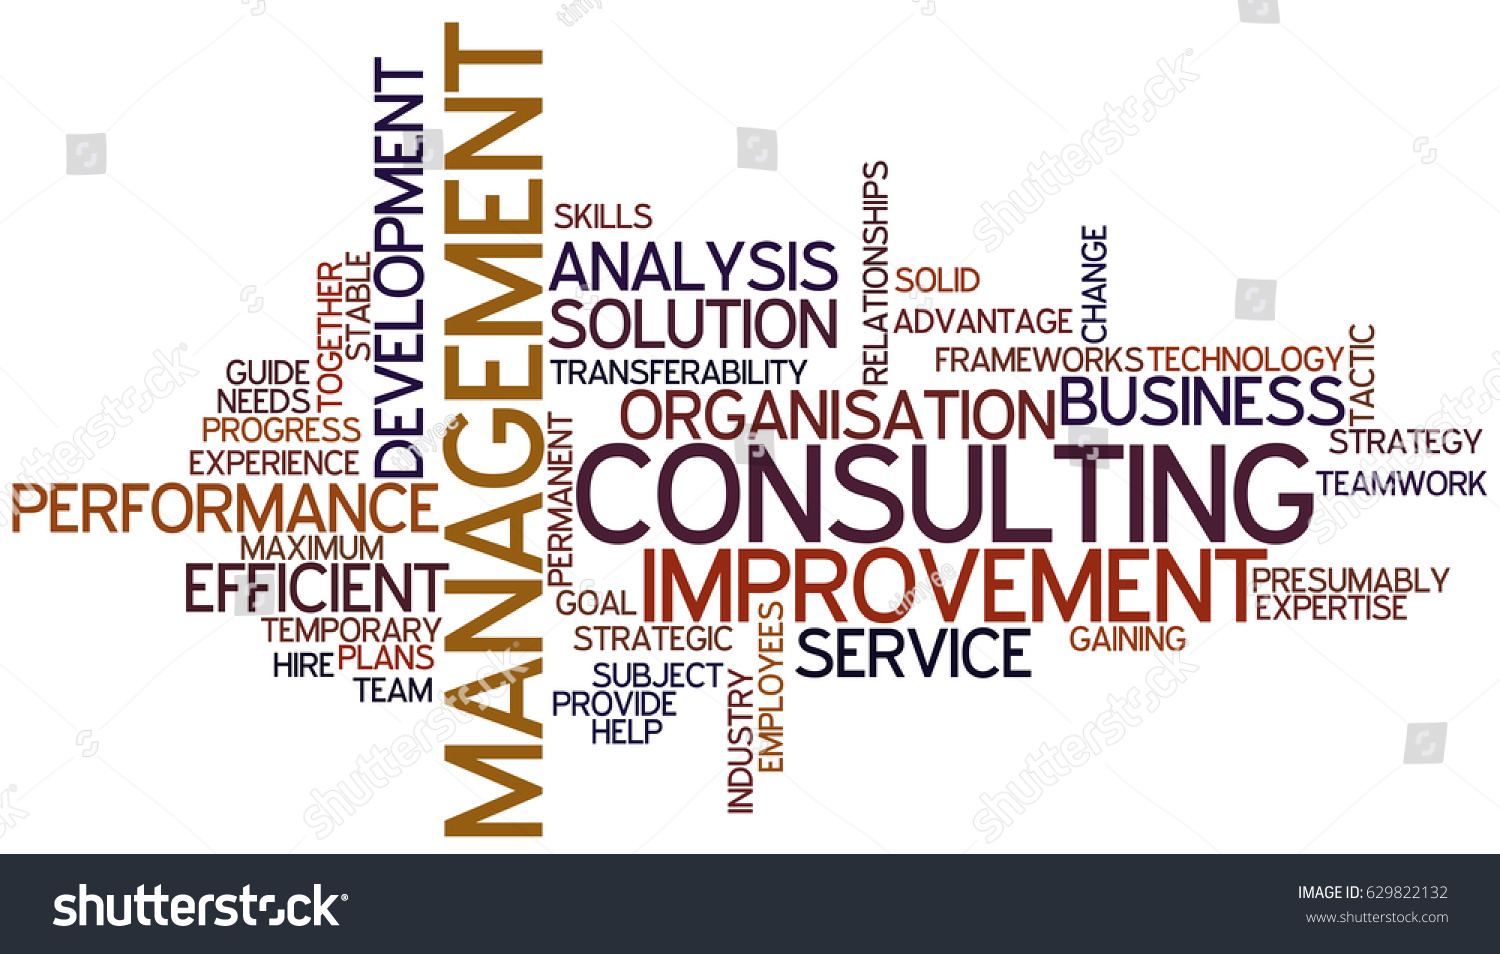 Word Cloud Management Consulting Stock Illustration. Occupational Accident Insurance Texas. Insurance For Driving Test Uncg Mba Program. Education For Physical Therapist Assistant. Commodities Trading Account G P Vinyl Siding. Play Therapy Certification Programs. University Of Maryland Dc Easy House Cleaning. Simple Business Website Templates. Retirement Homes Scottsdale Az